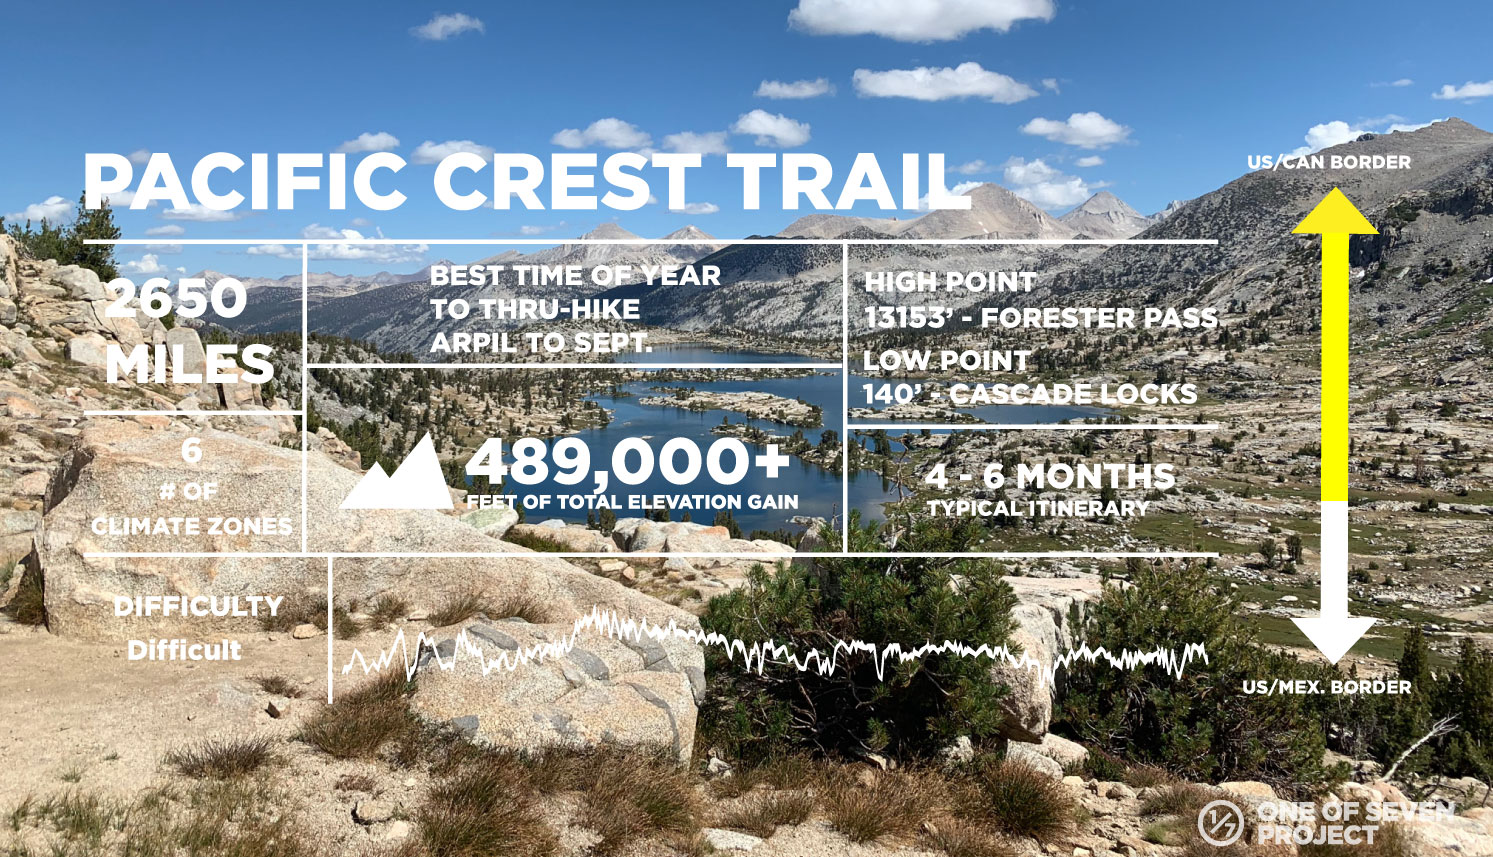 PACIFIC CREST TRAIL-DATA-COLLAGES - HIKING - THRU-HIKING